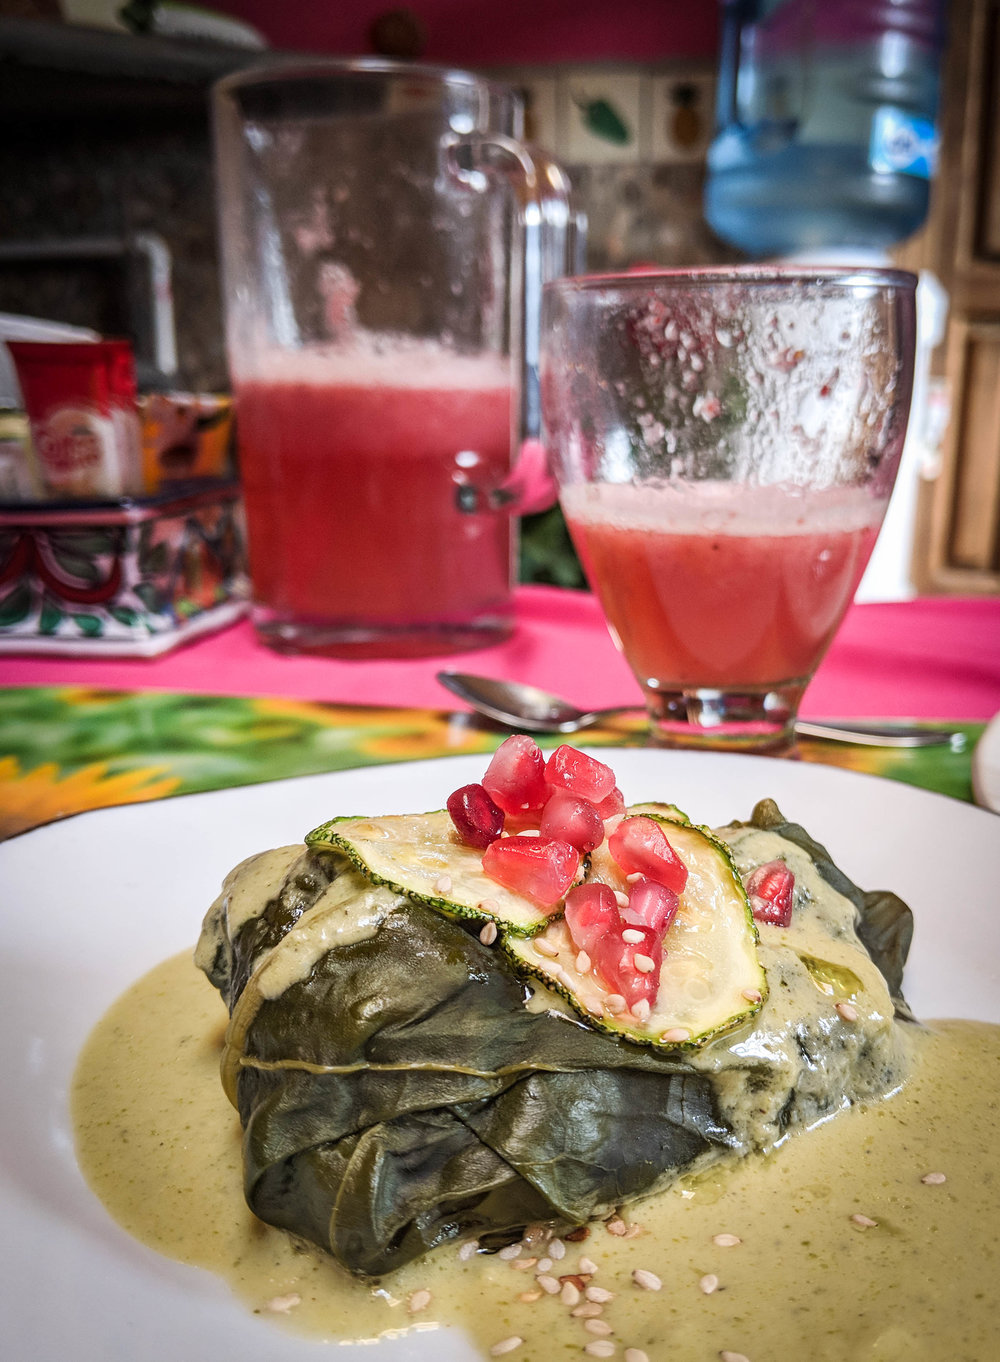 Spinach tamales with avocado cream sauce